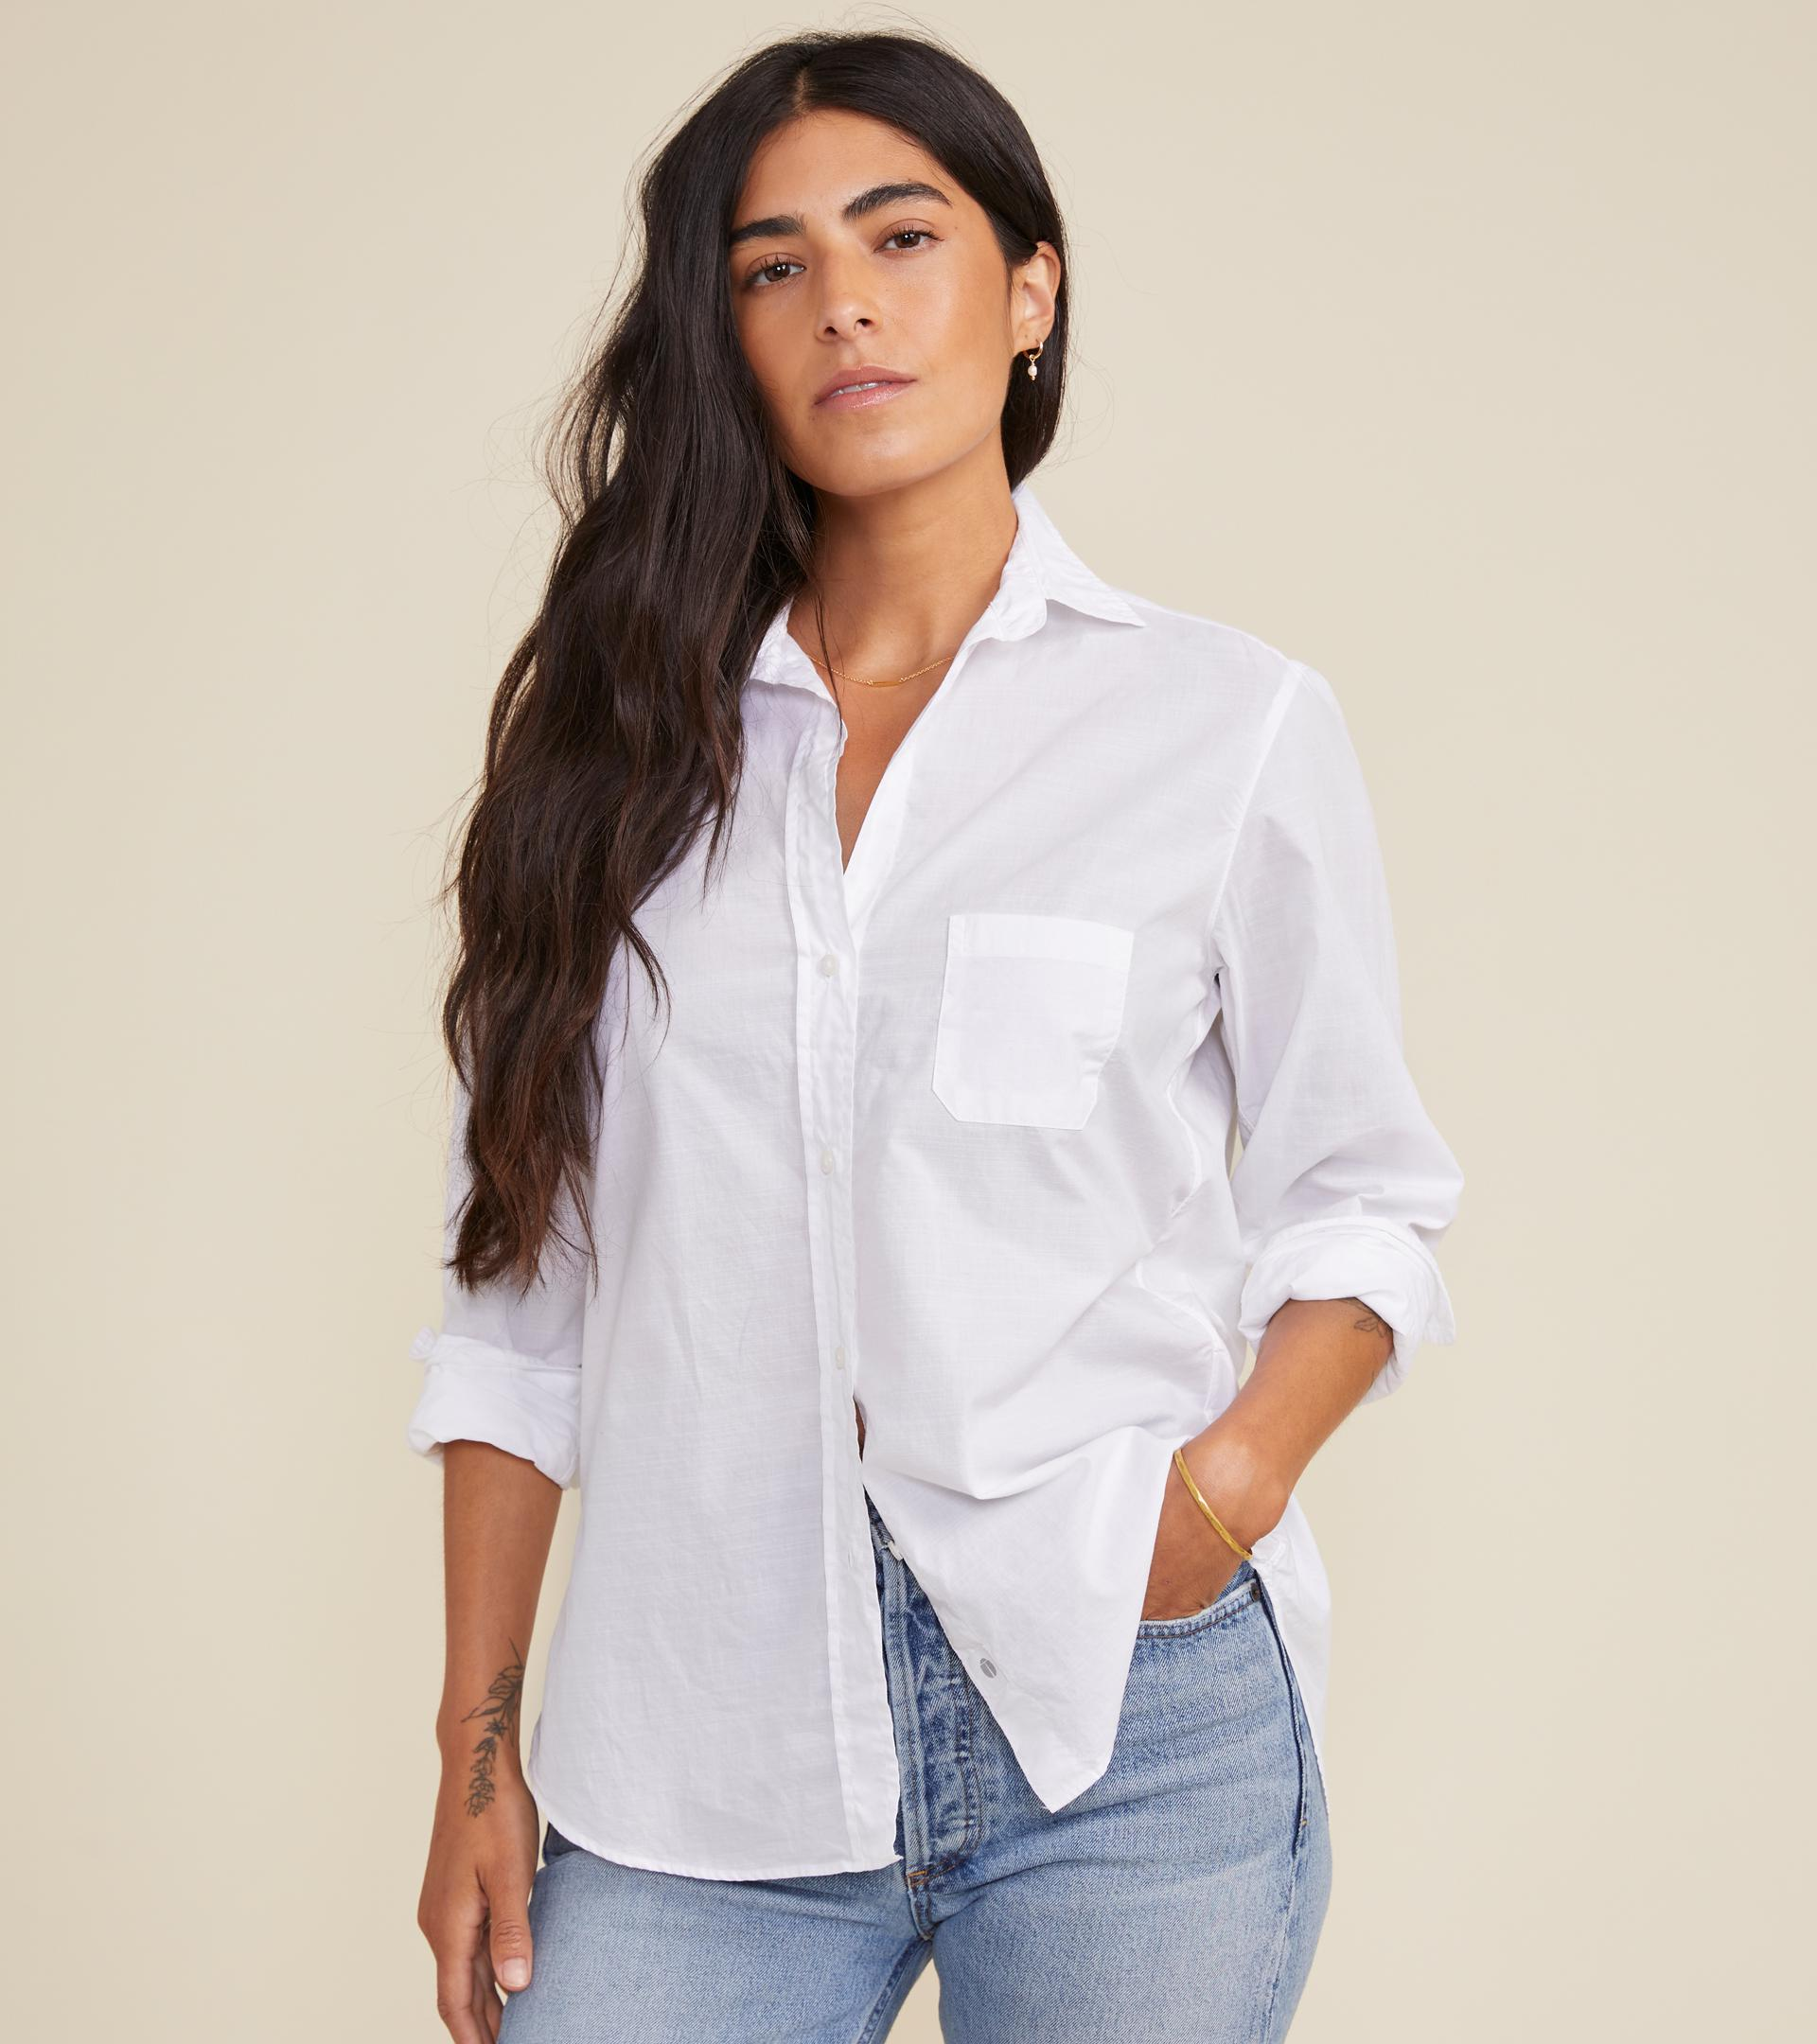 The Hero Classic White, Washed Cotton 2